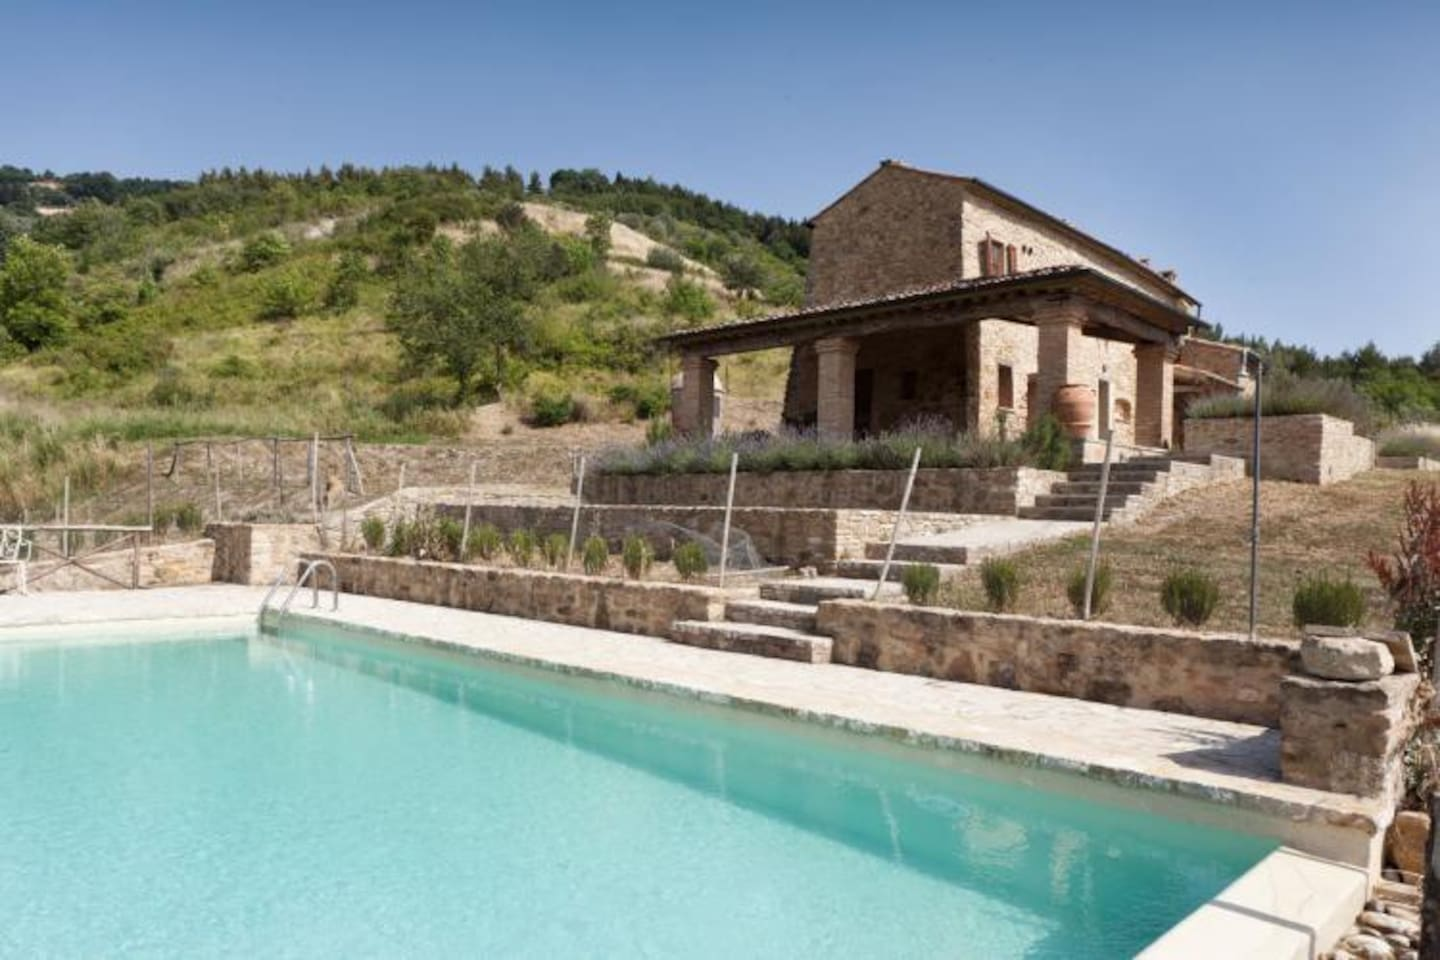 Villa Fraggina exterior with swimming pool and terraced garden